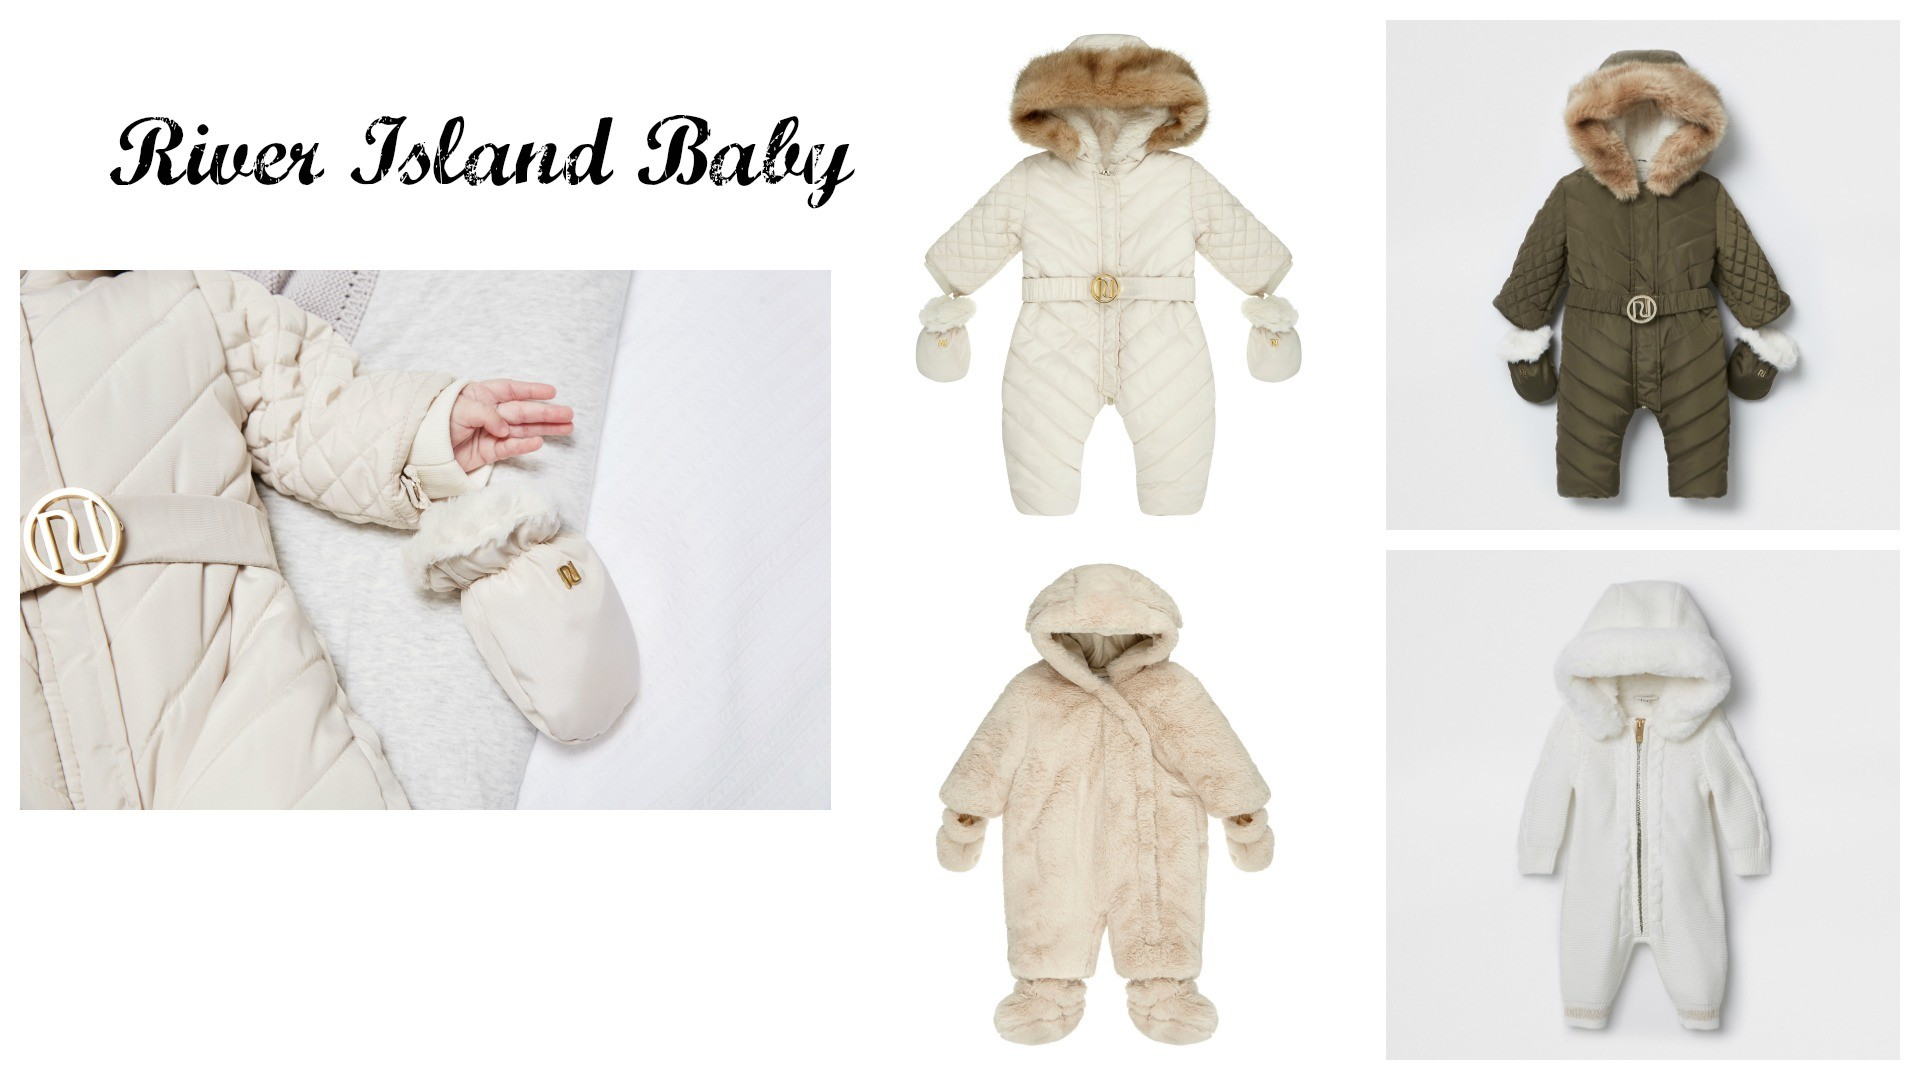 The HERO snowsuit by River Island Baby